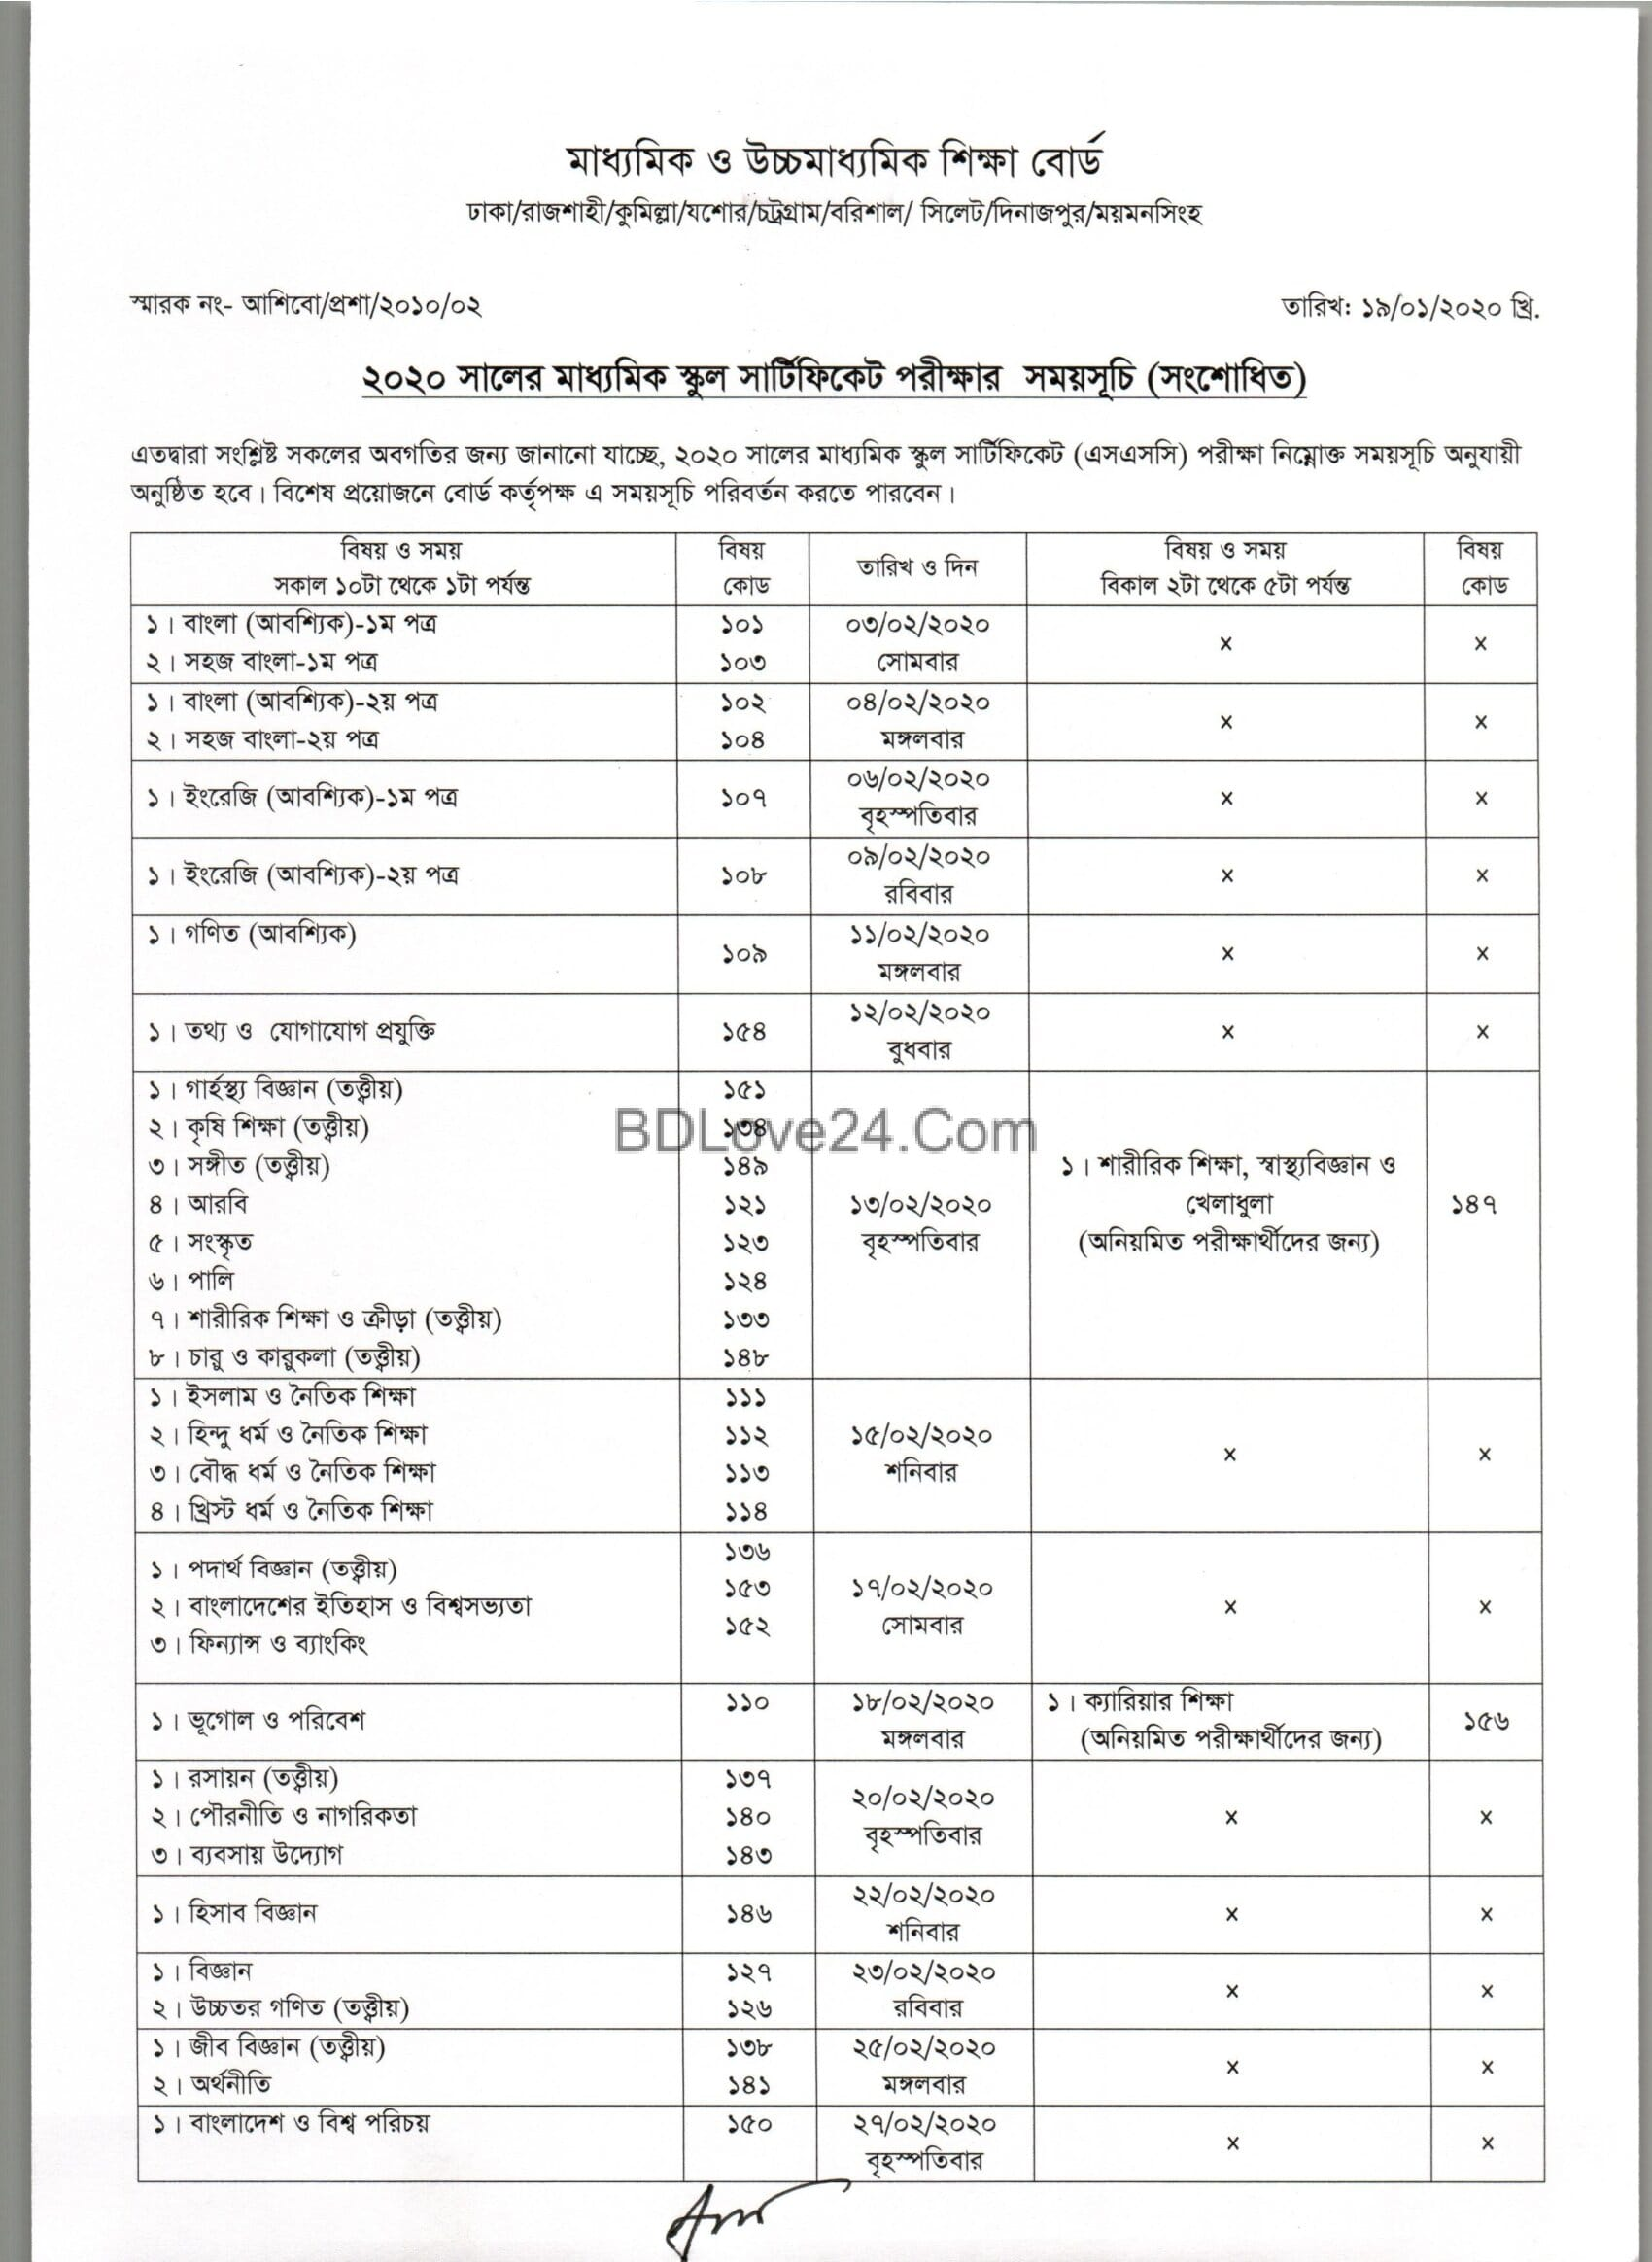 SSC Exam Routine 2020 (new),Dakhil Exam Time Table 2020,SSC and Dakhil (New Routine)